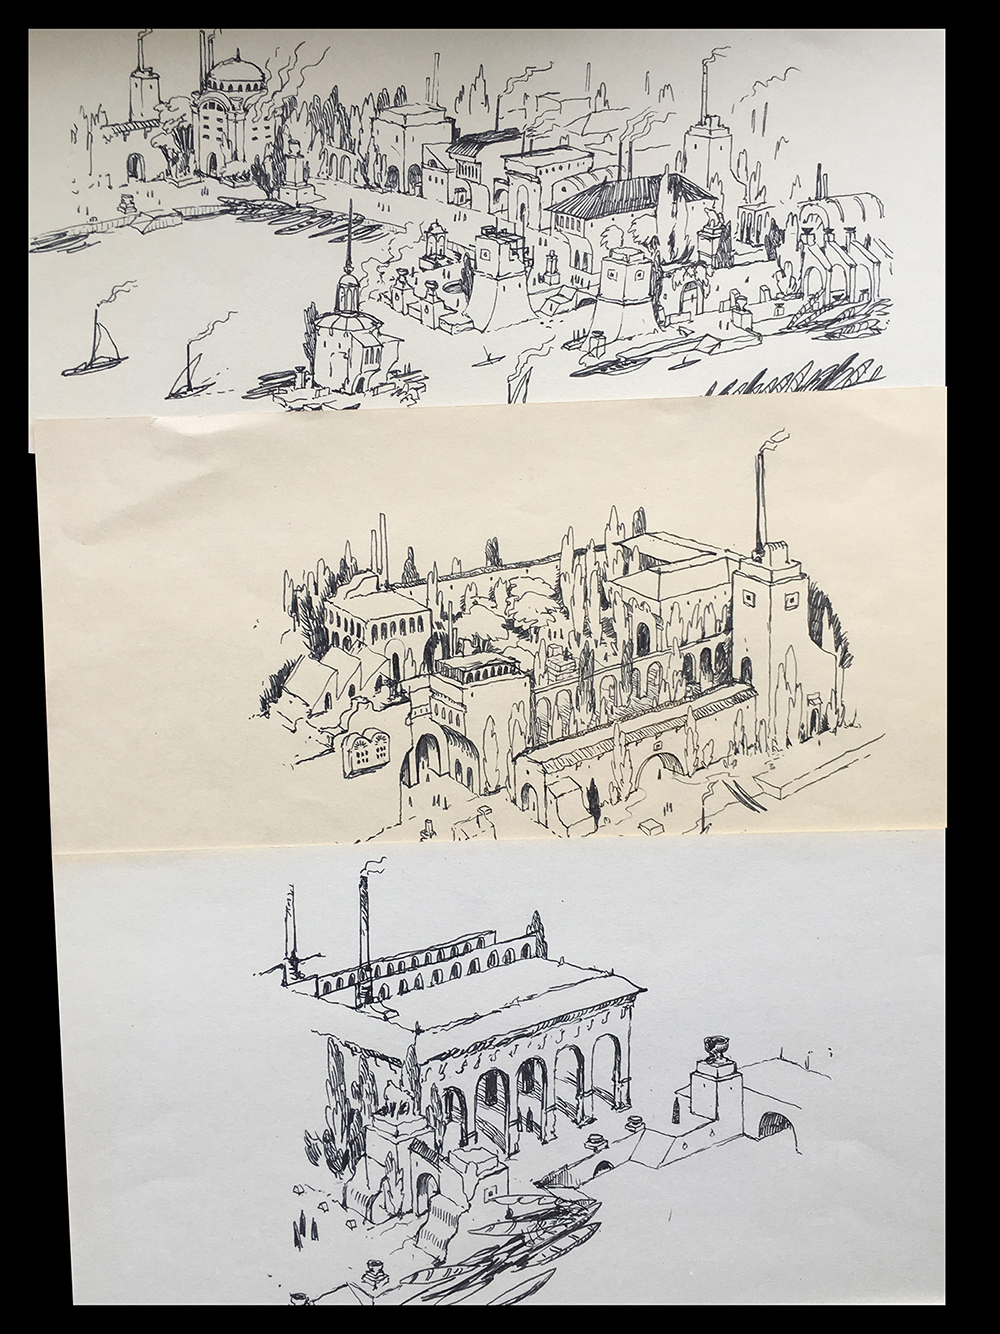 Book of Travels Story Guide + Walkthrough - Overview - A Capital City for Braided Shore - 639CF8F